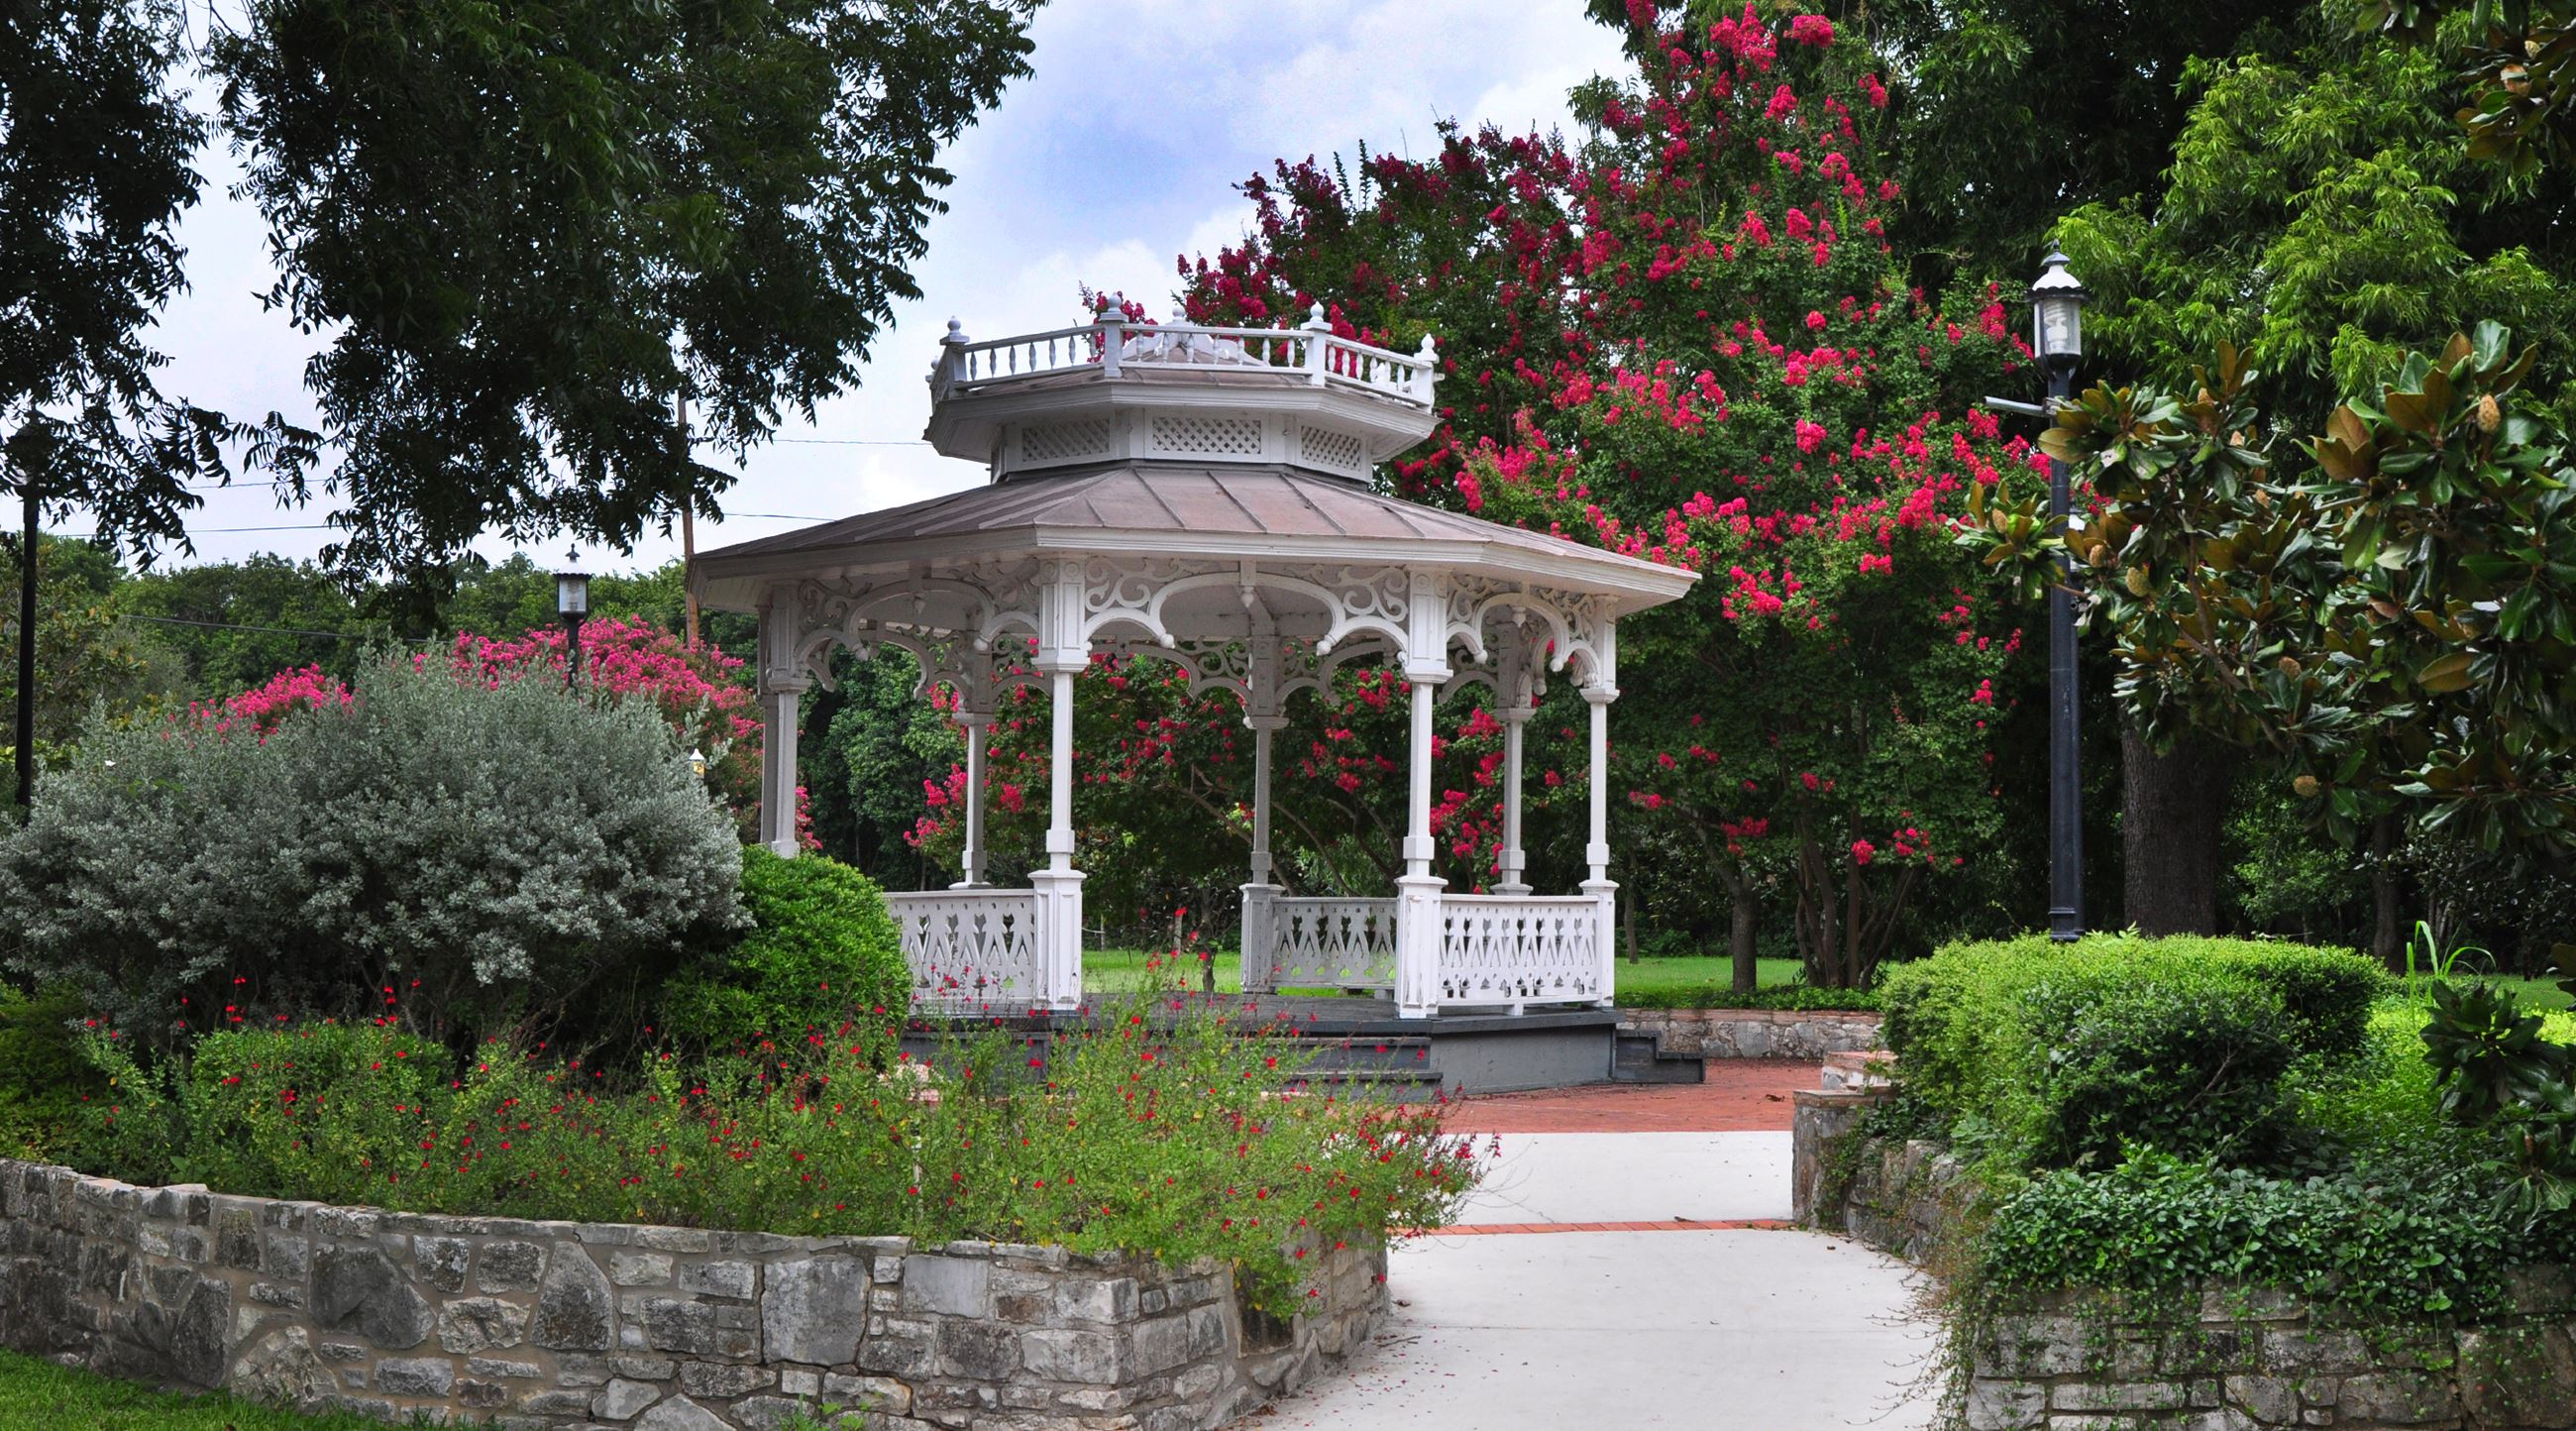 photo of gazebo